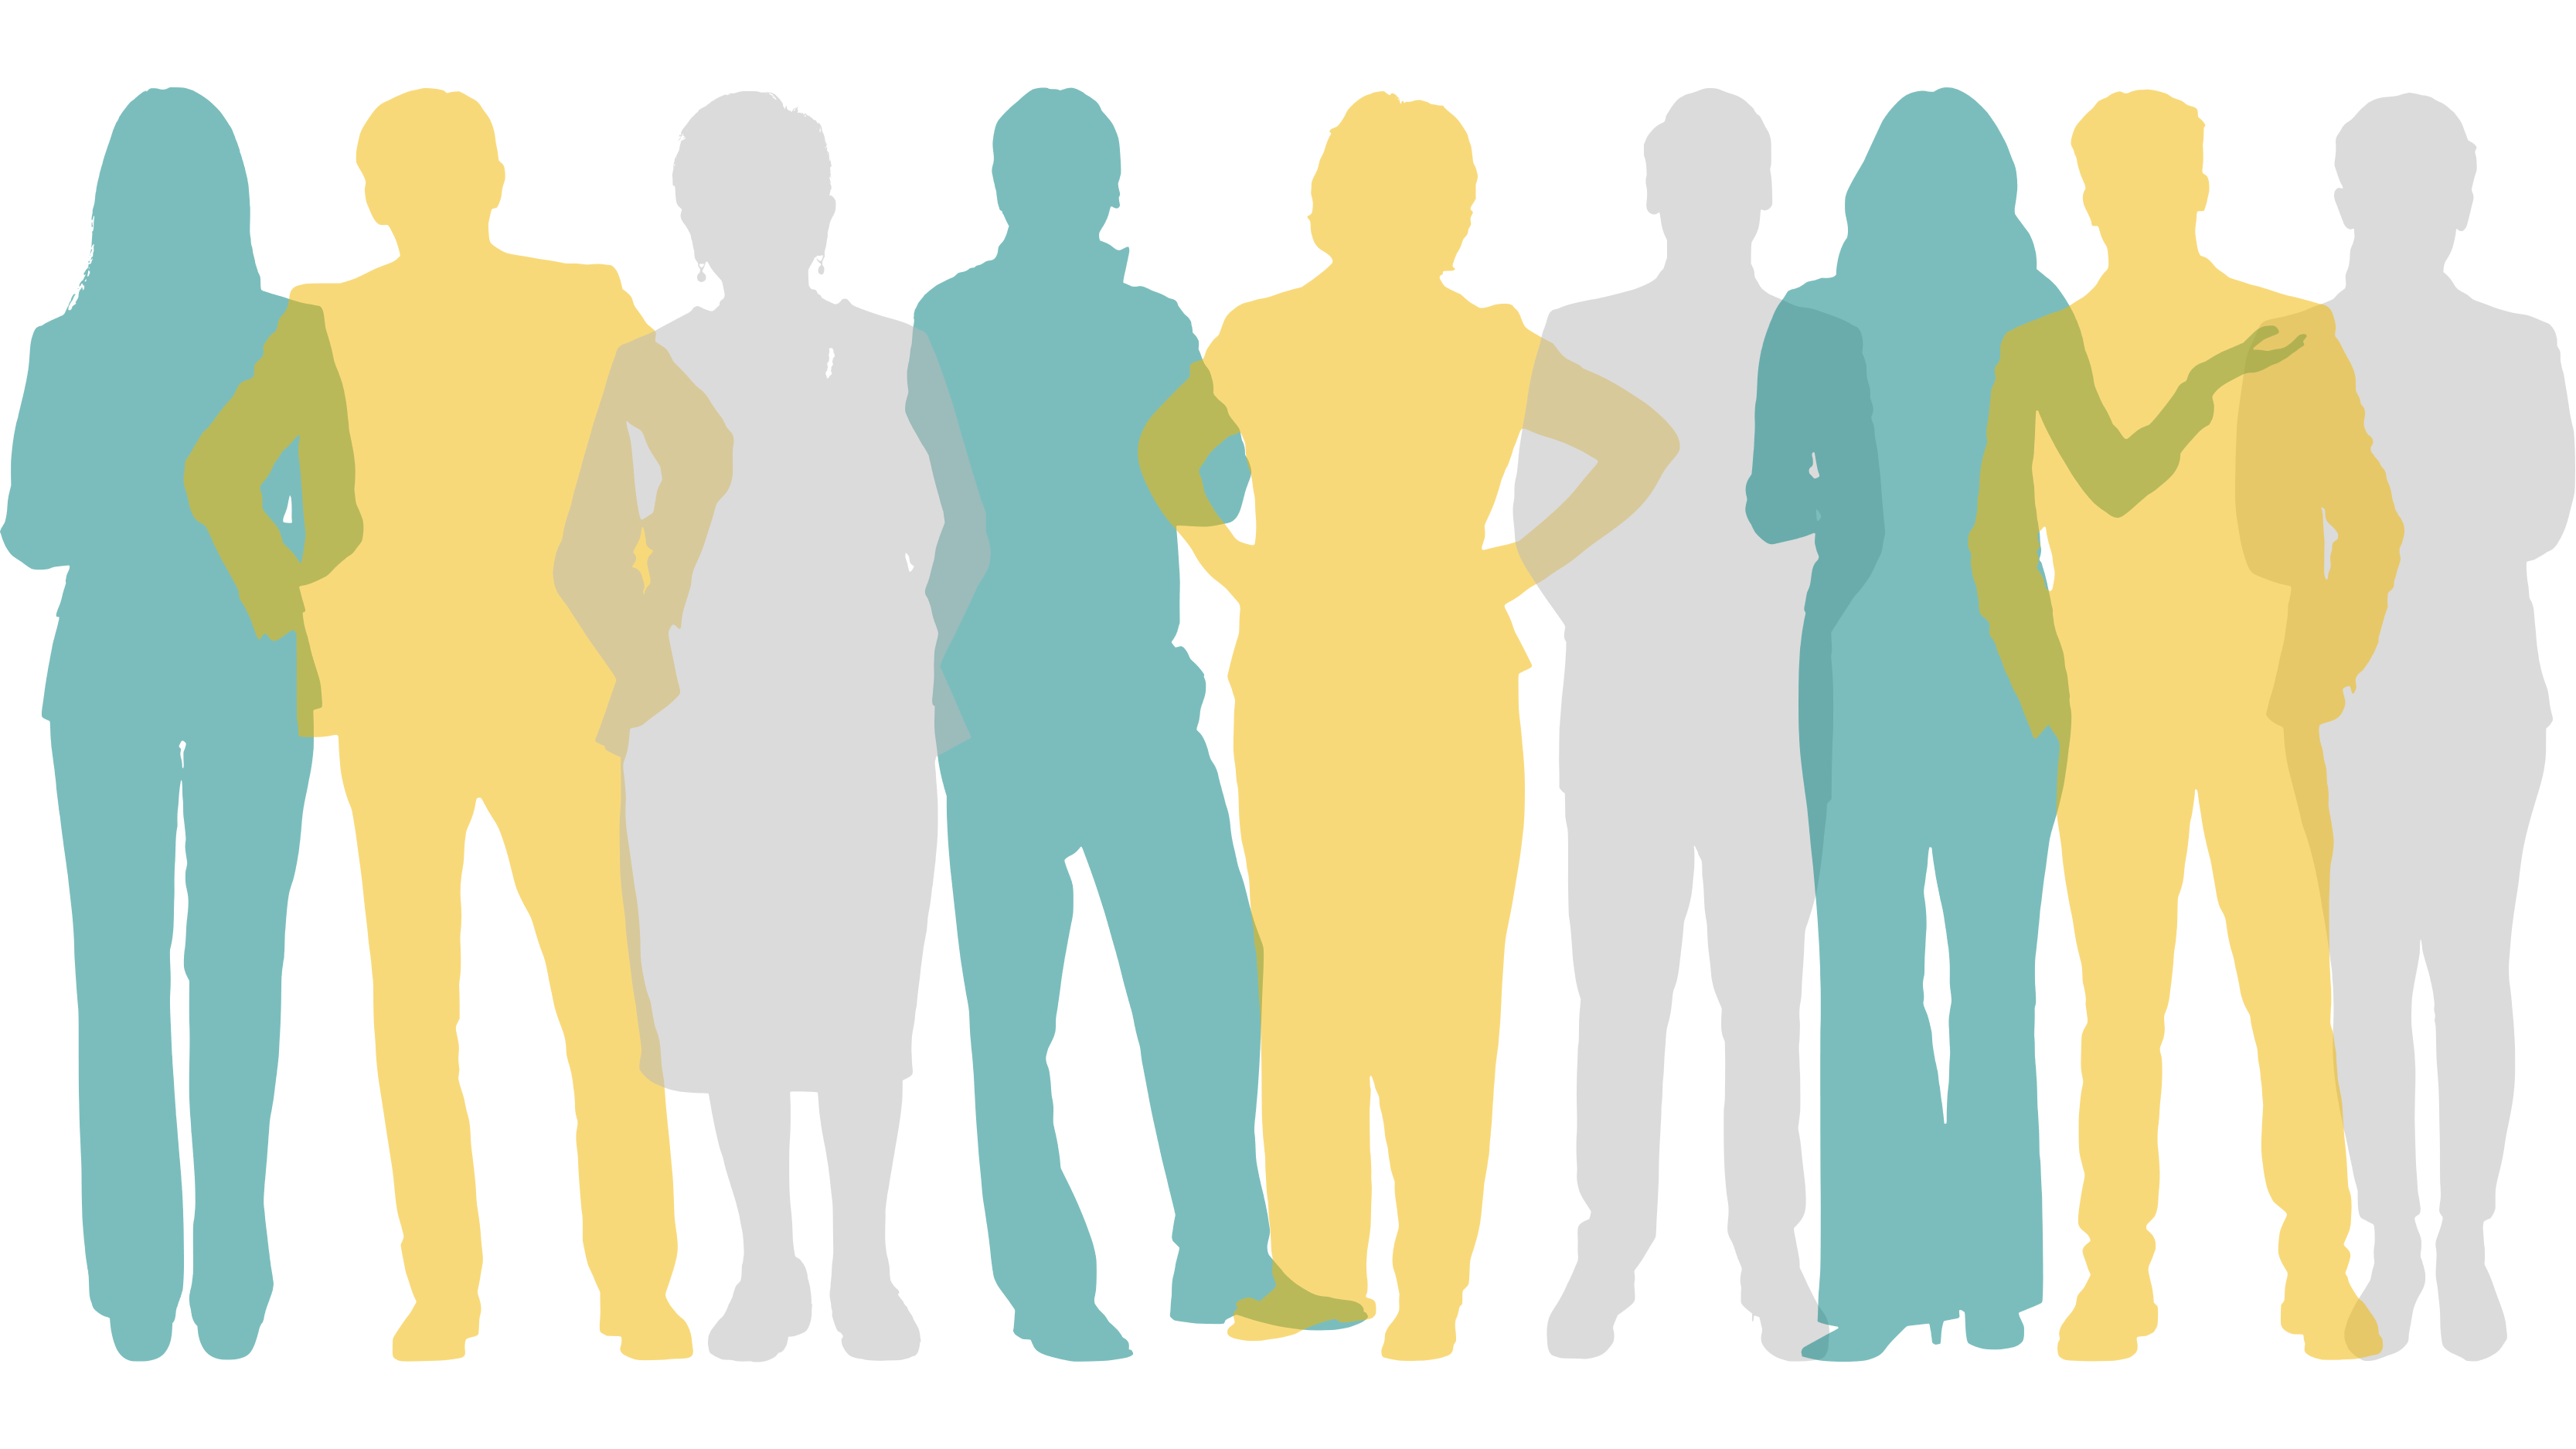 Group of slightly overlapping coloured silhouettes, same as picture above but with some transparency t better see full outline of all people